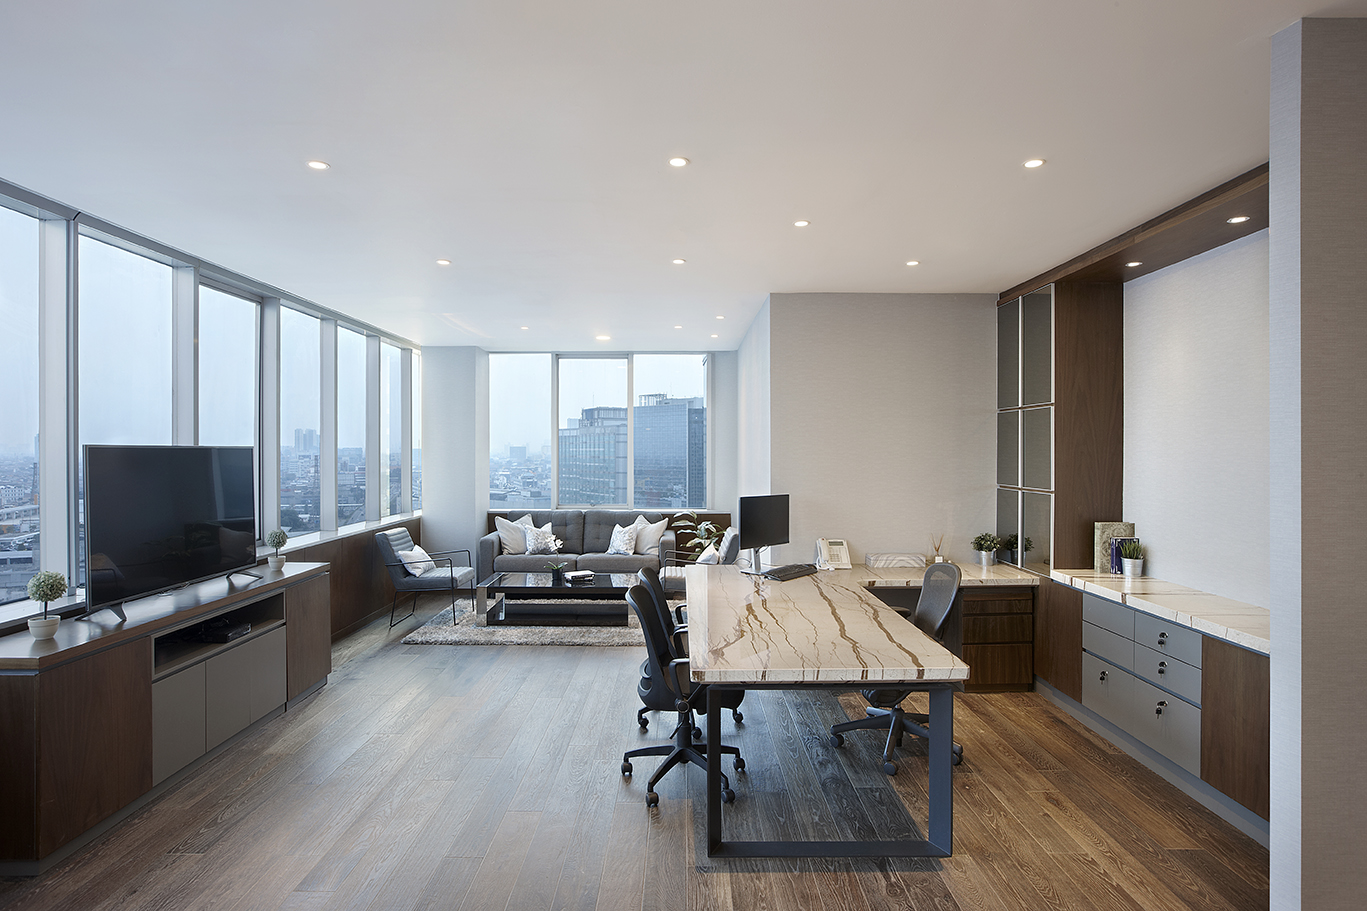 5 Steps to Designing an Executive Office Room - Blog ...